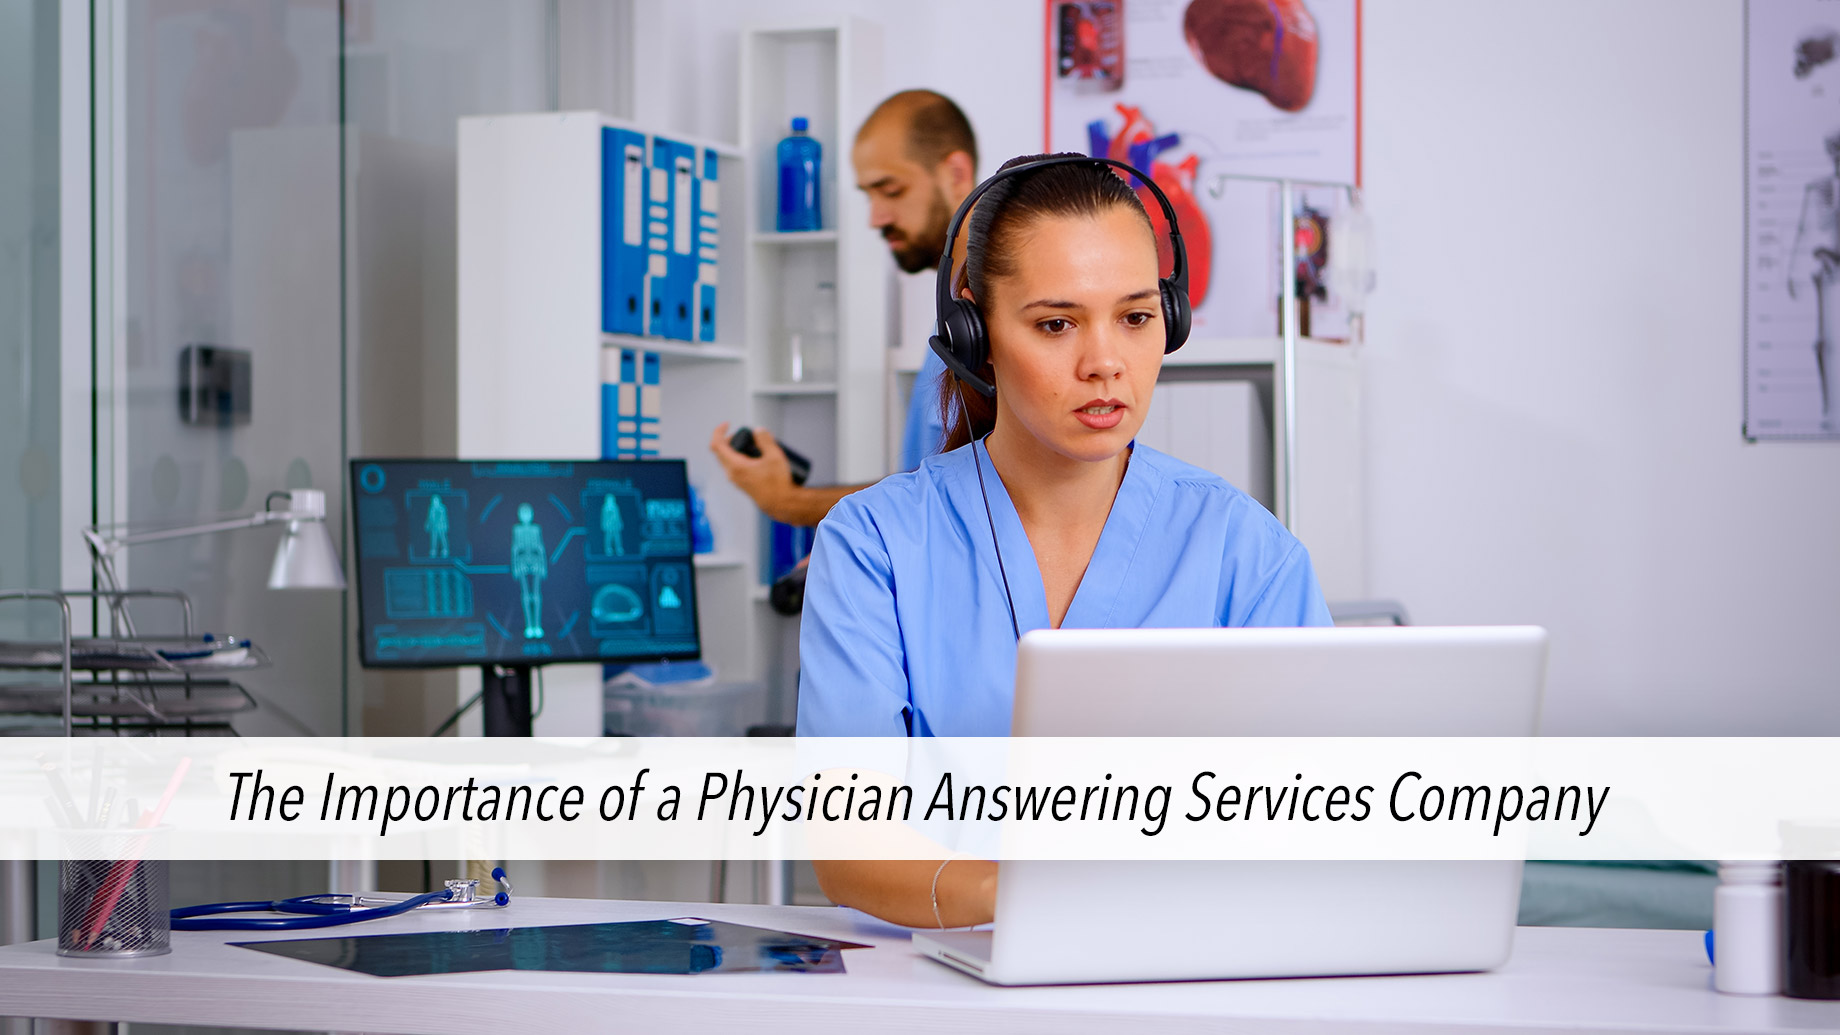 Complete Guide on the Importance of a Physician Answering Services Company